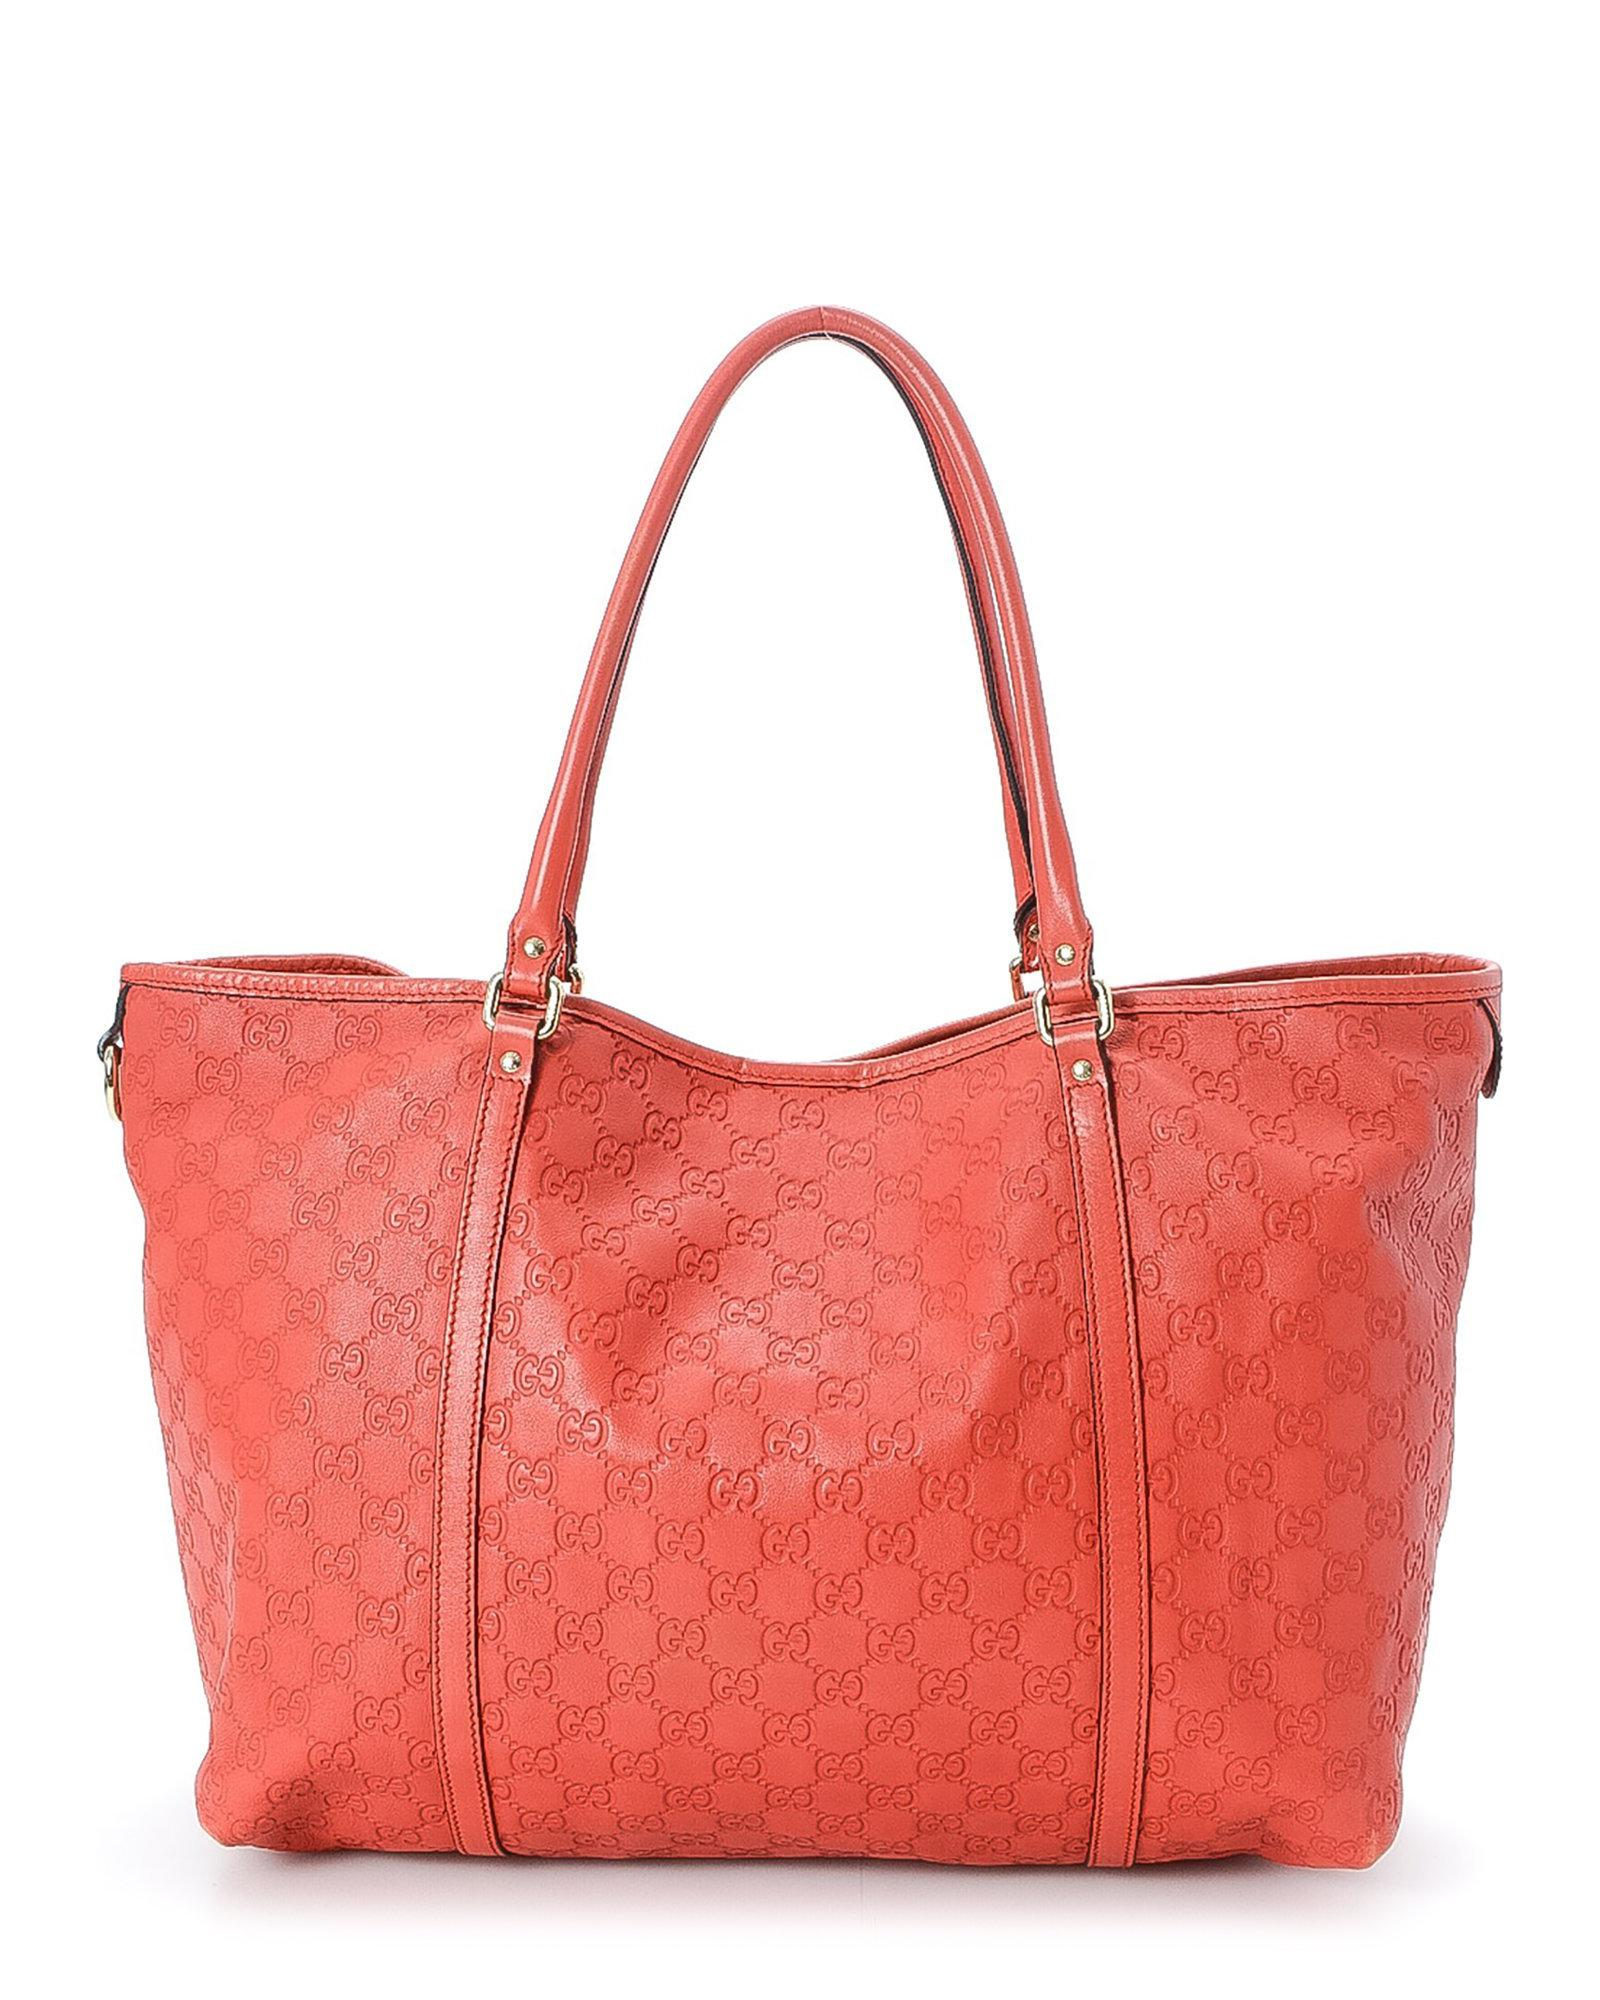 b41a8748df8 Lyst - Gucci Ssima Tote Bag - Vintage in Red